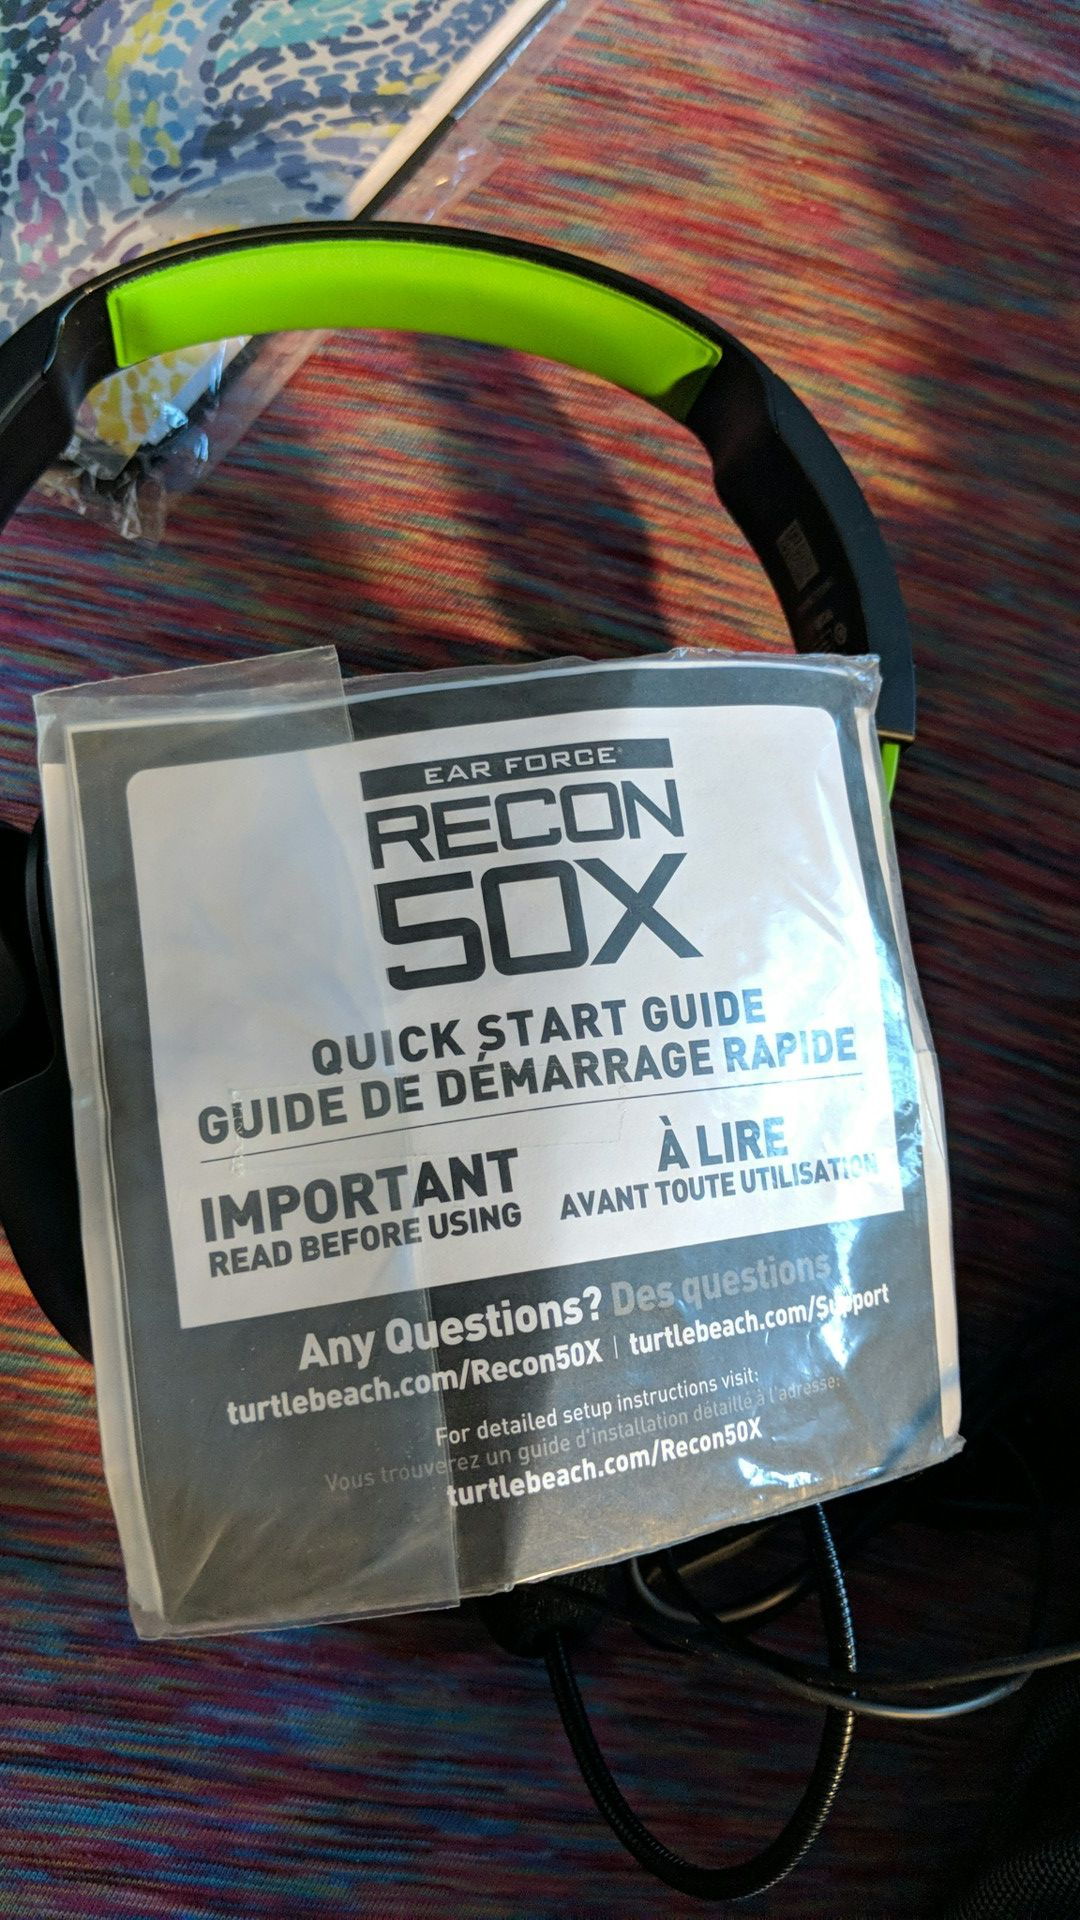 Recon sox gaming headset